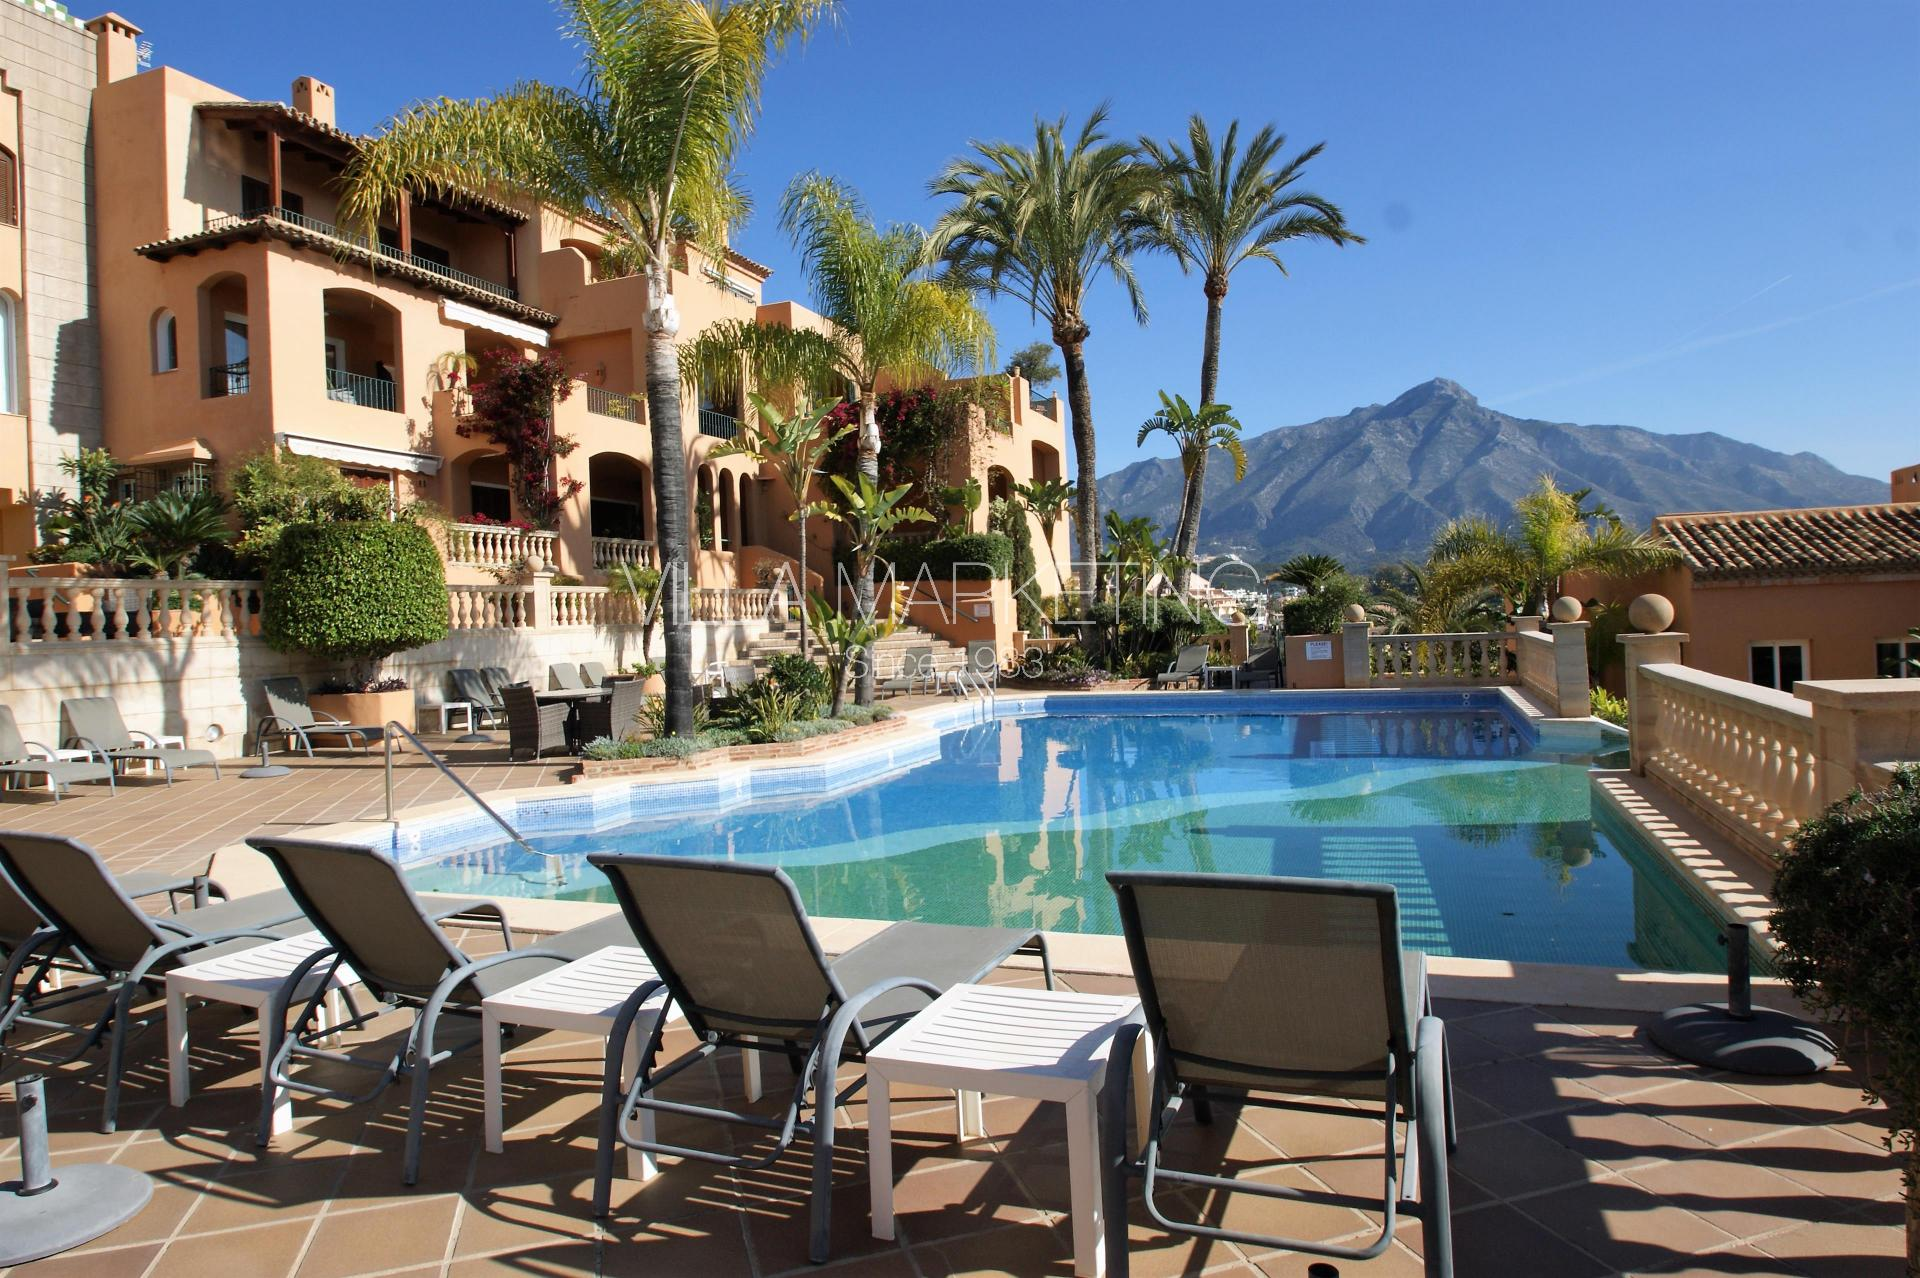 Apartment for rent in Nueva Andalucía, Marbella - VML0812 ...